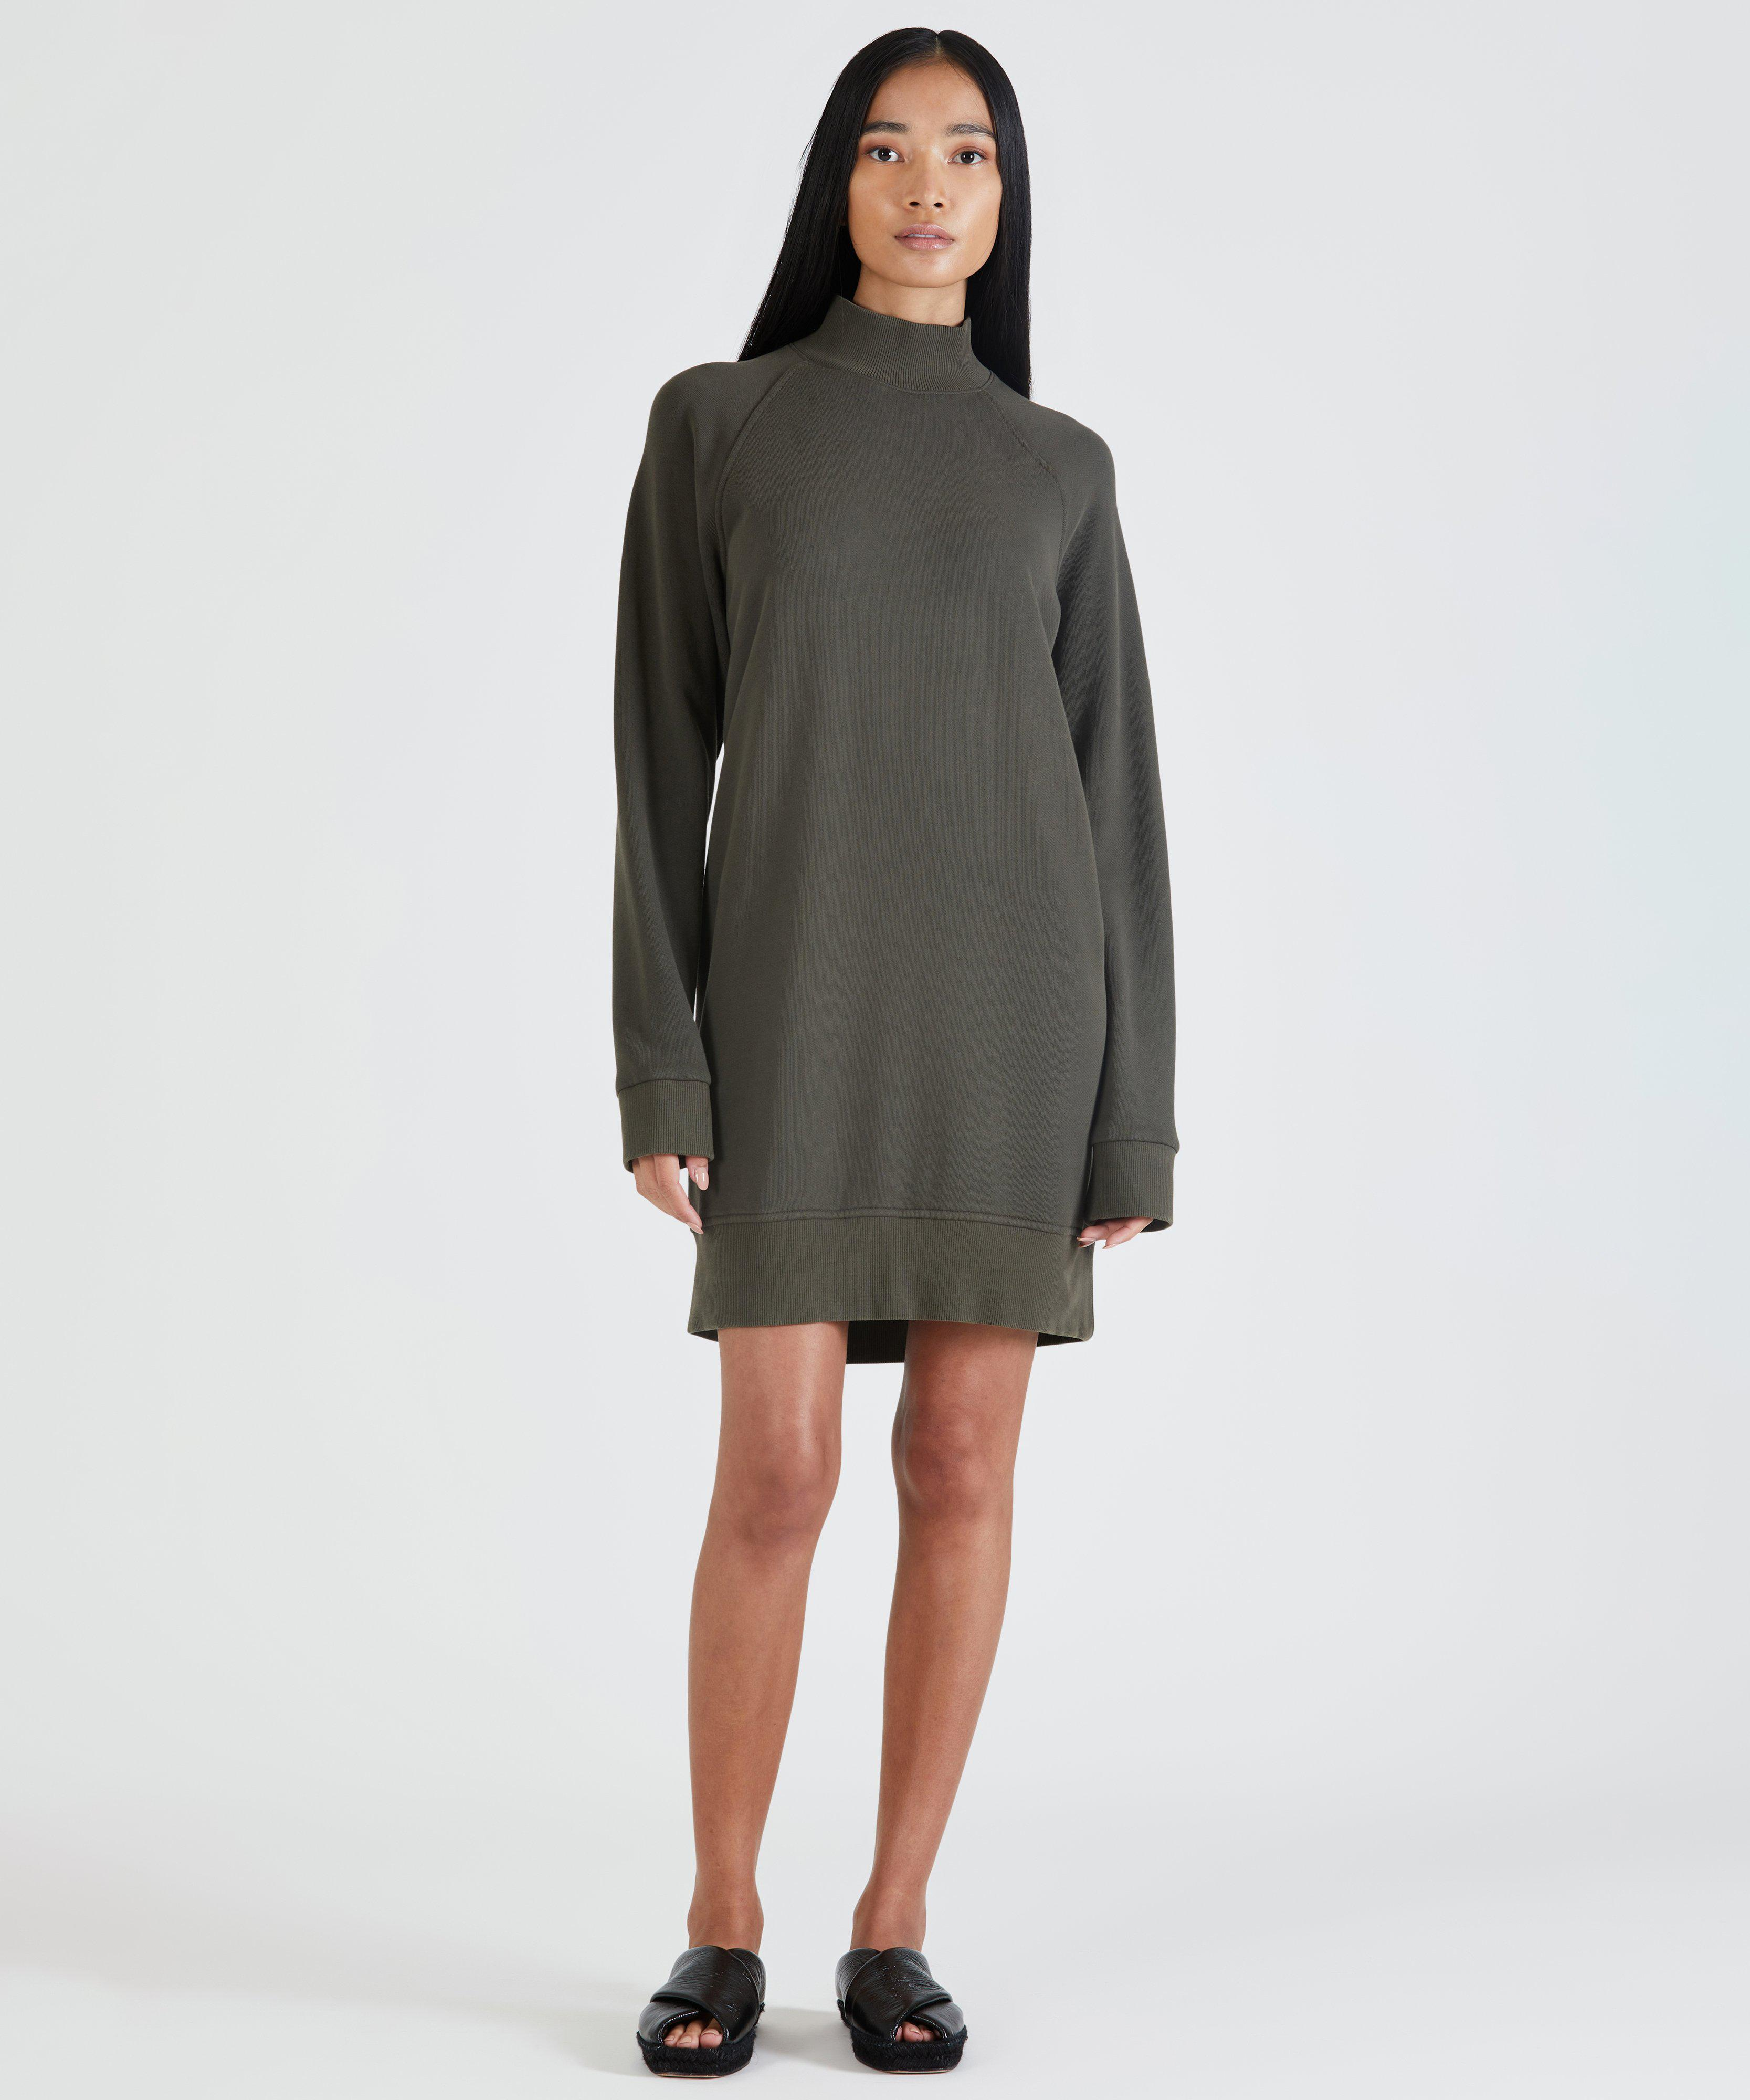 French Terry Garment Washed Mock Neck Dress - Chestnut